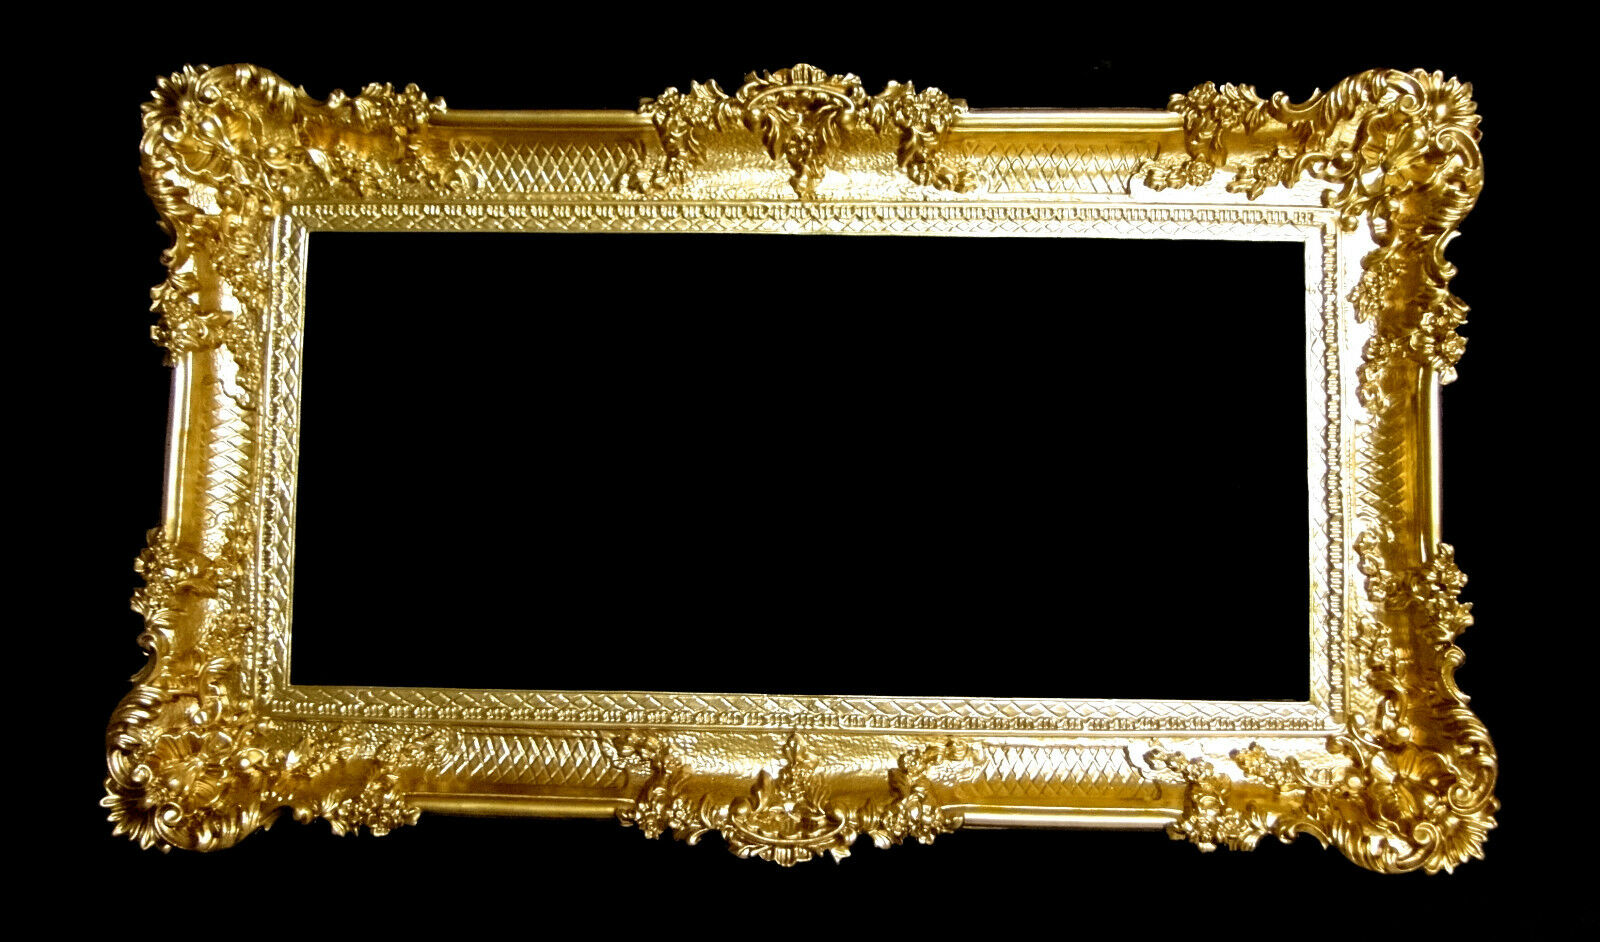 121 NEW BALDWIN Images SOAP DISH Solid Polished Brass part # 33506-030